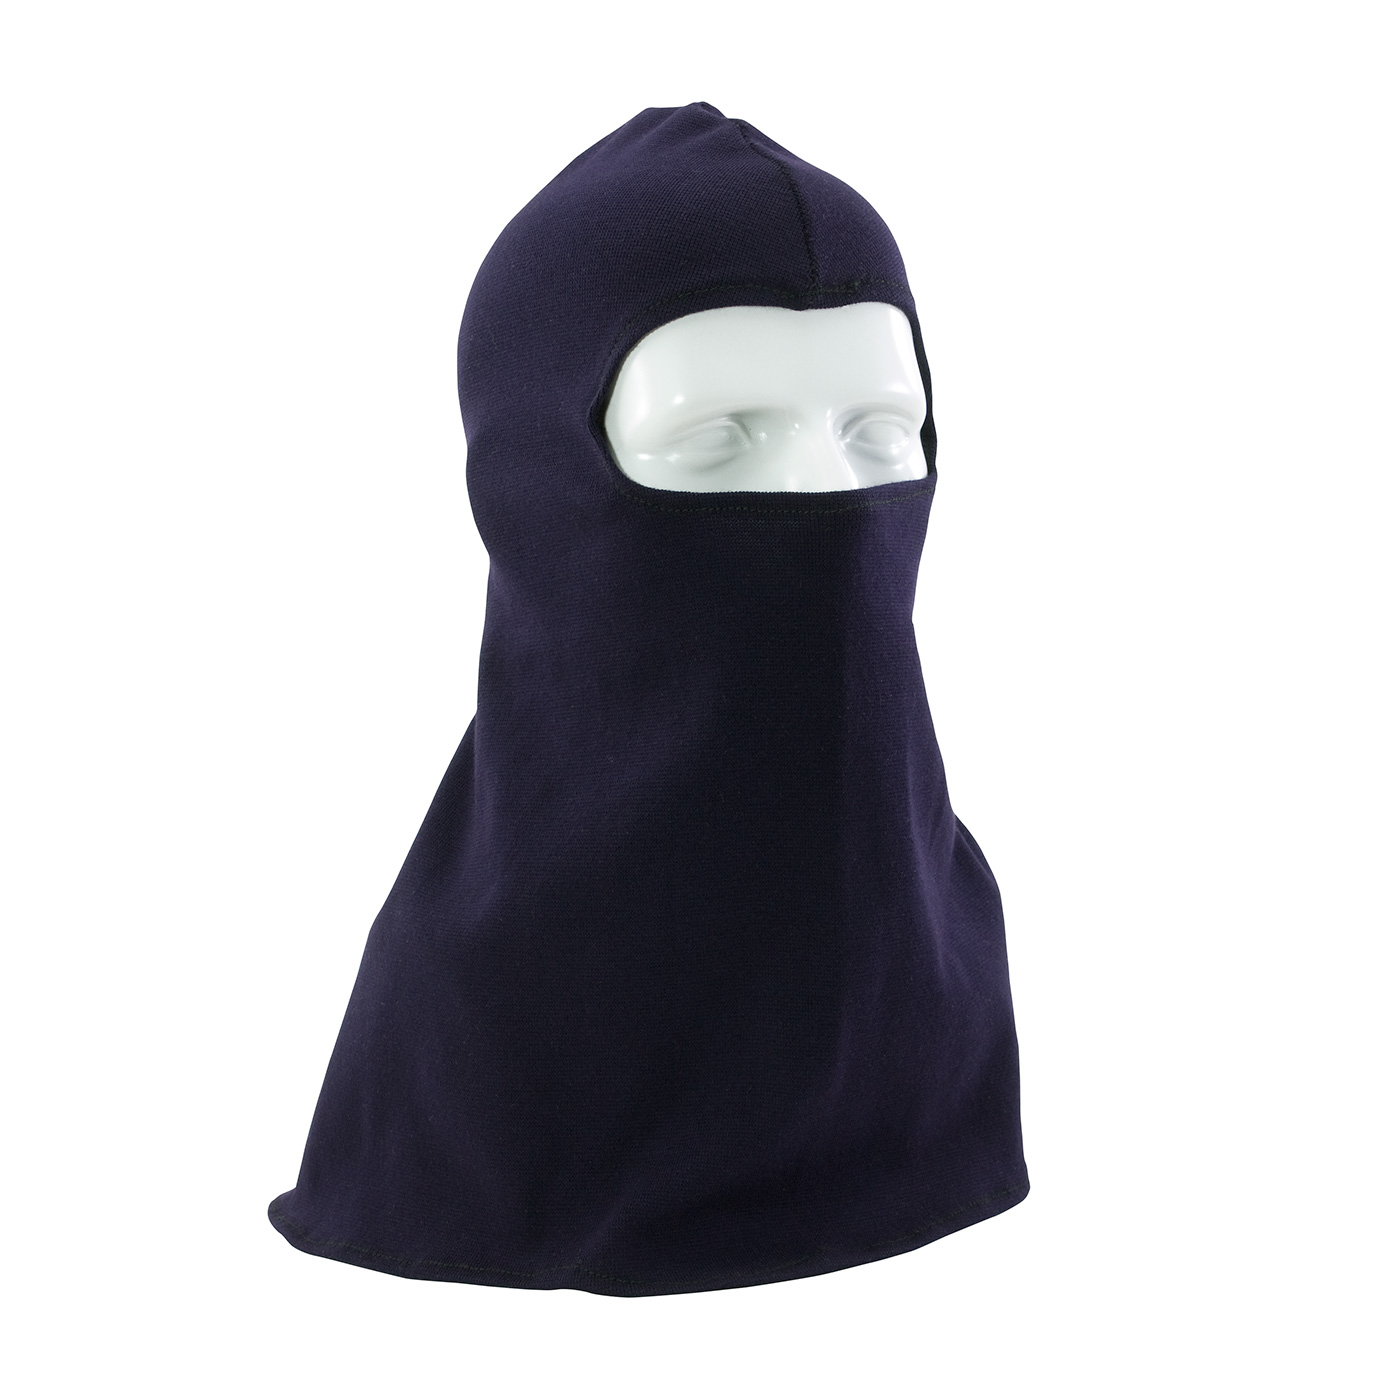 Balaclava Ultrasoft 8.5 oz 100% Cotton Single Layer